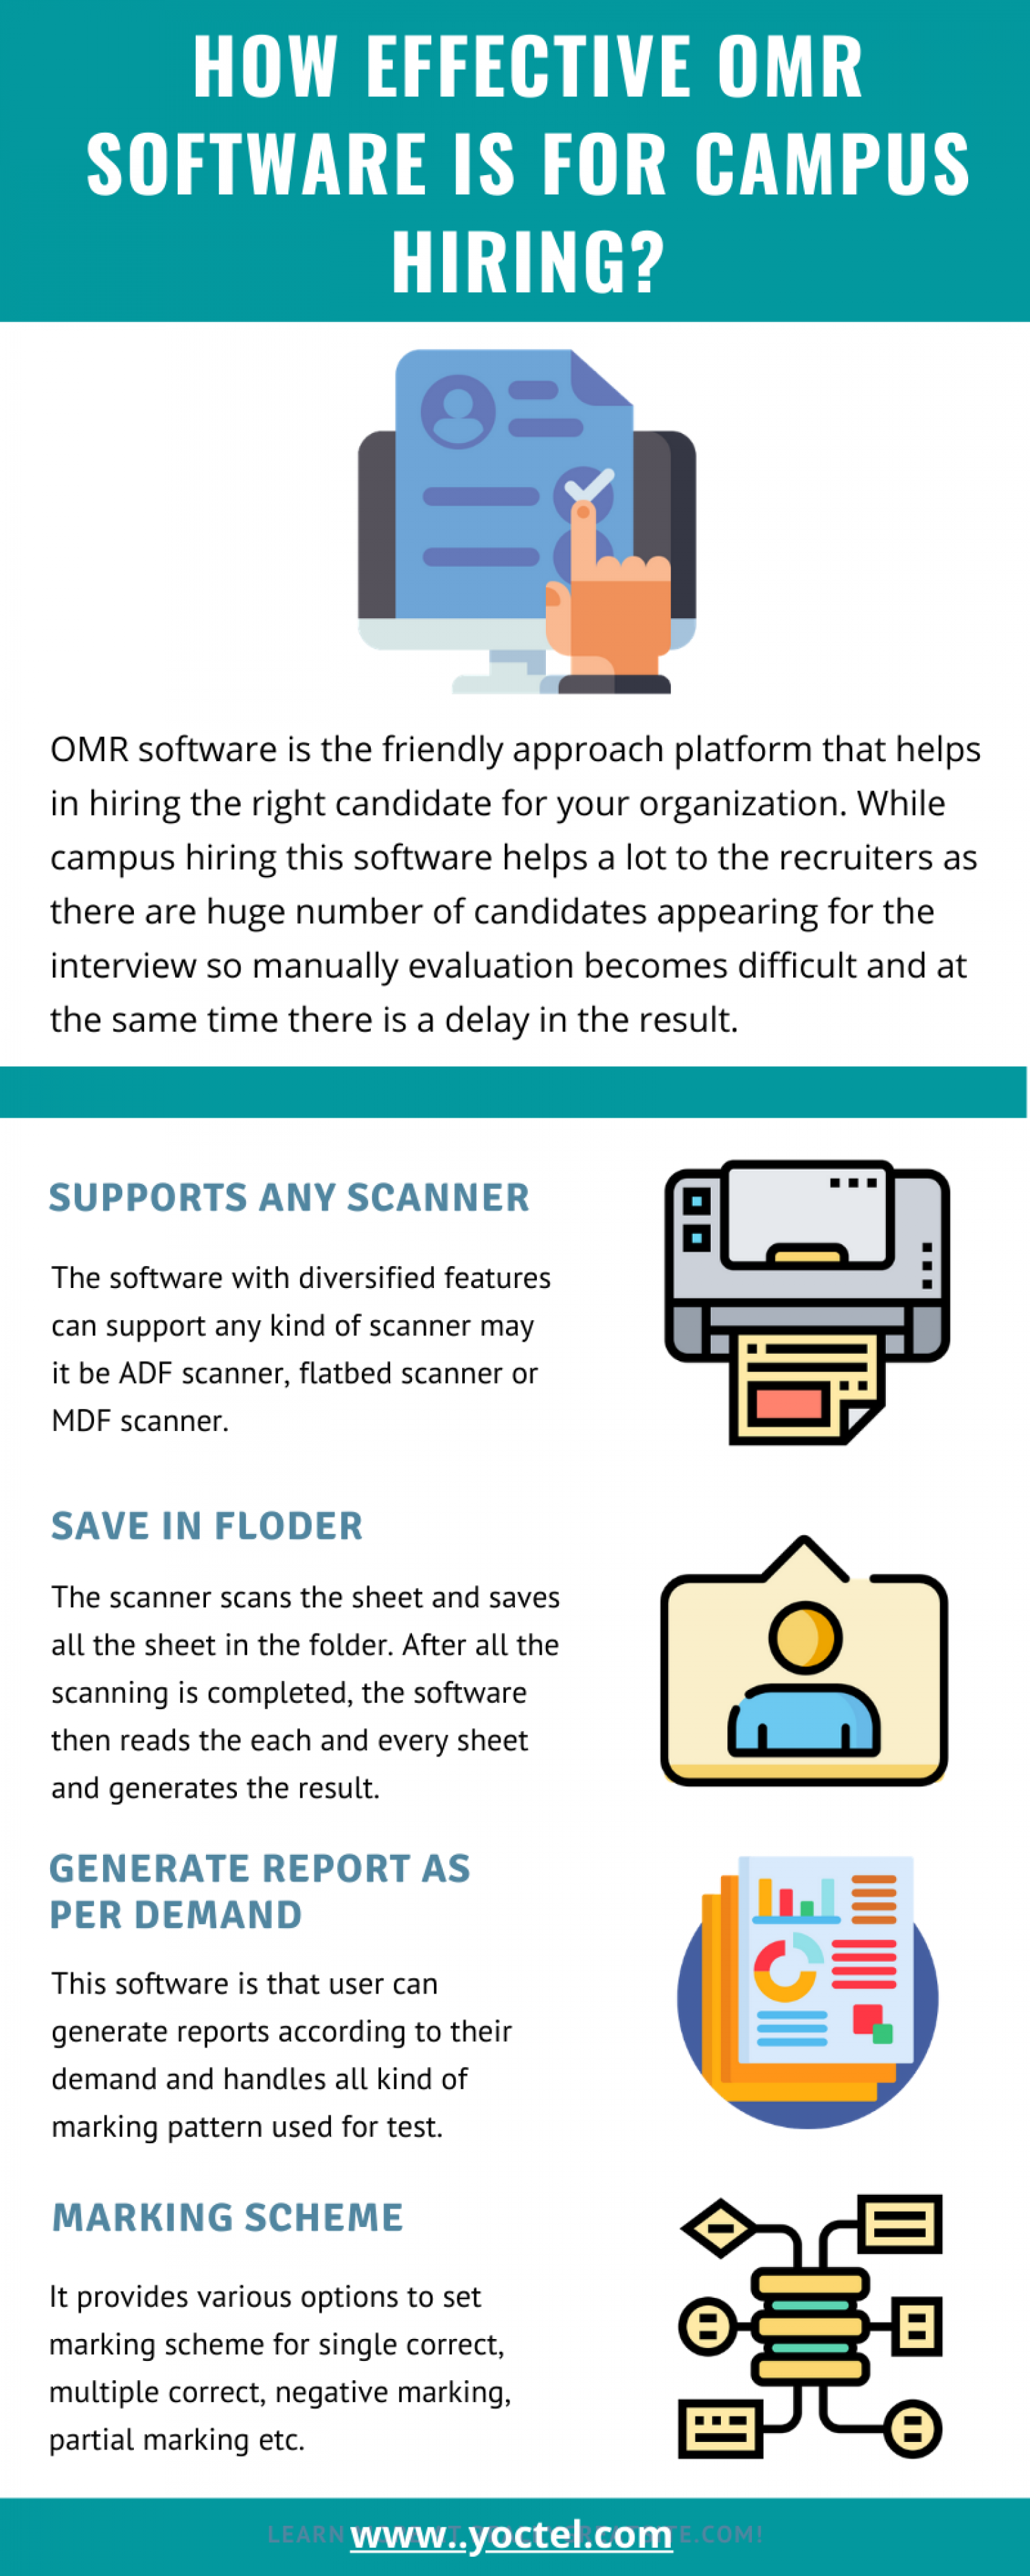 How Effective OMR Software Is For Campus Hiring? Infographic